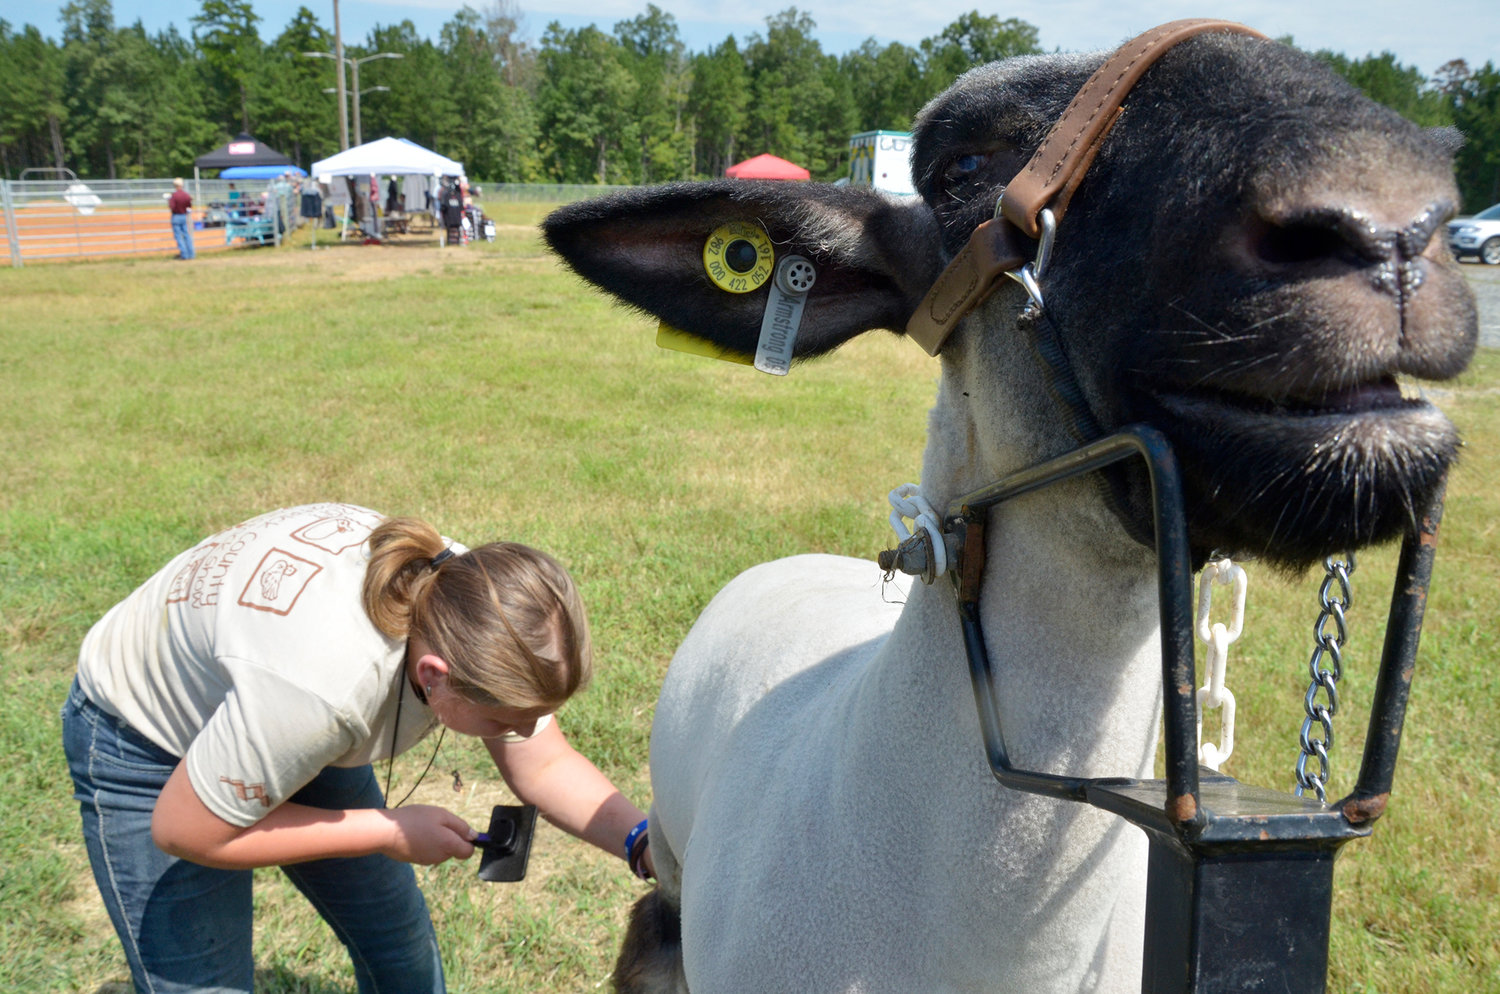 Last minute detailing